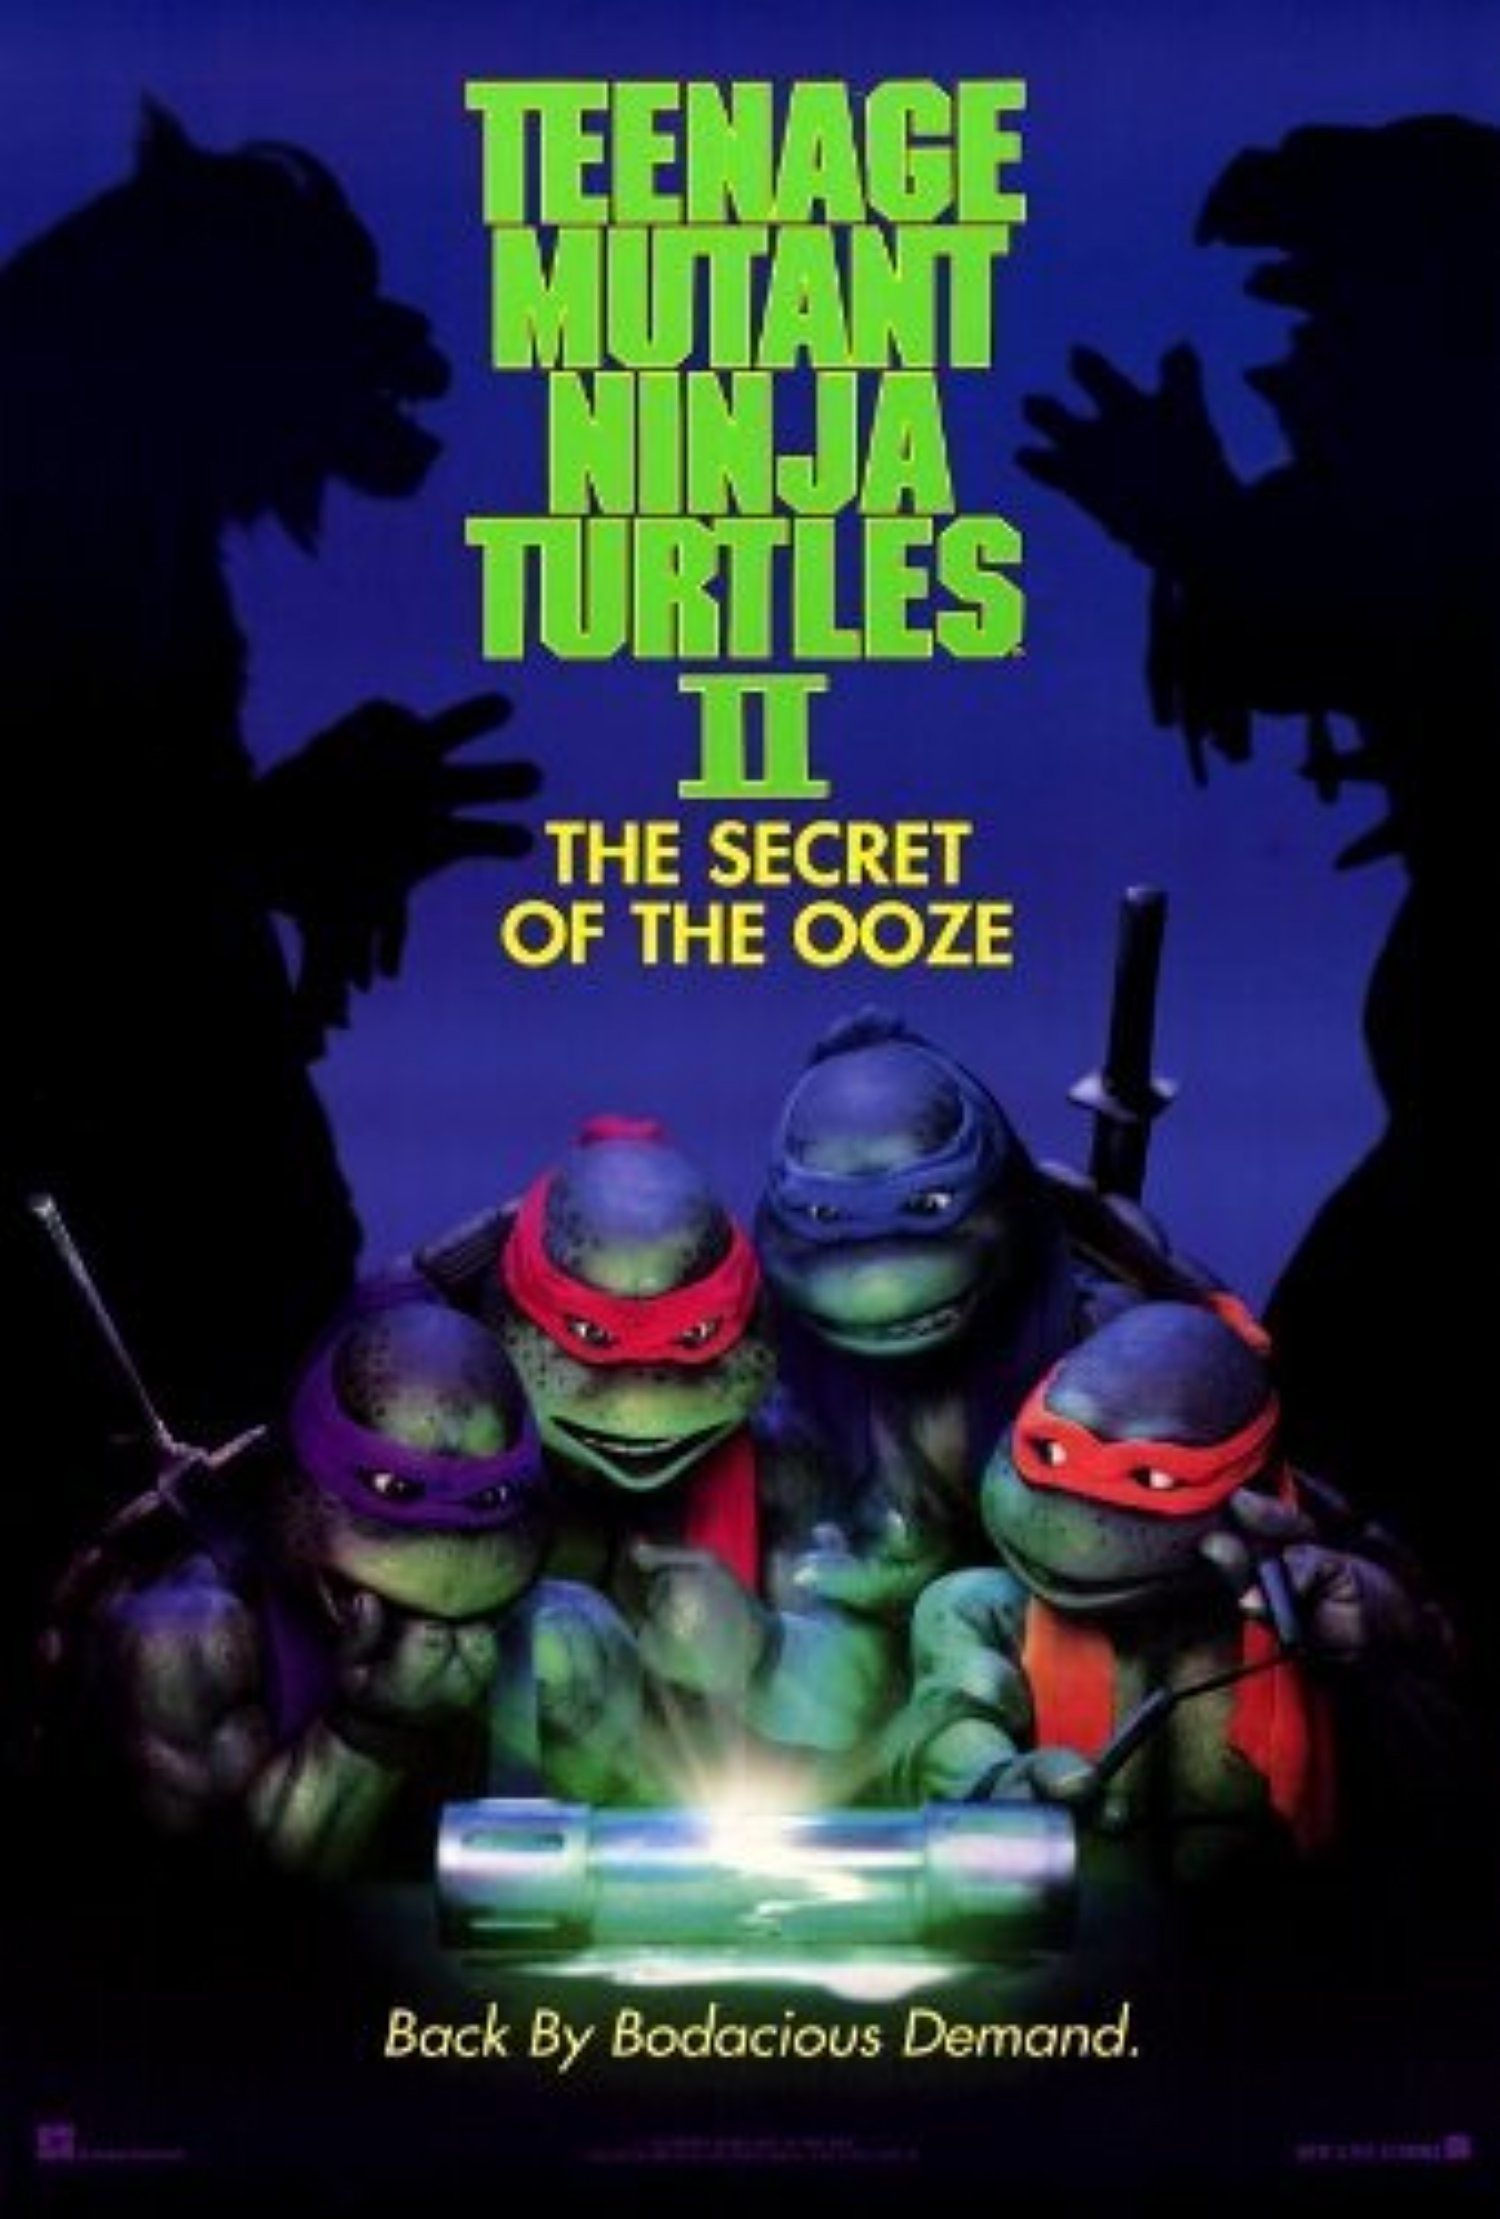 Decal Jewelry 27 X 40 Teenage Mutant Ninja Turtles 2 The Secret Of The Ooze Movie Poster Aw Teenage Mutant Ninja Turtles Teenage Mutant Ninja Ninja Turtles